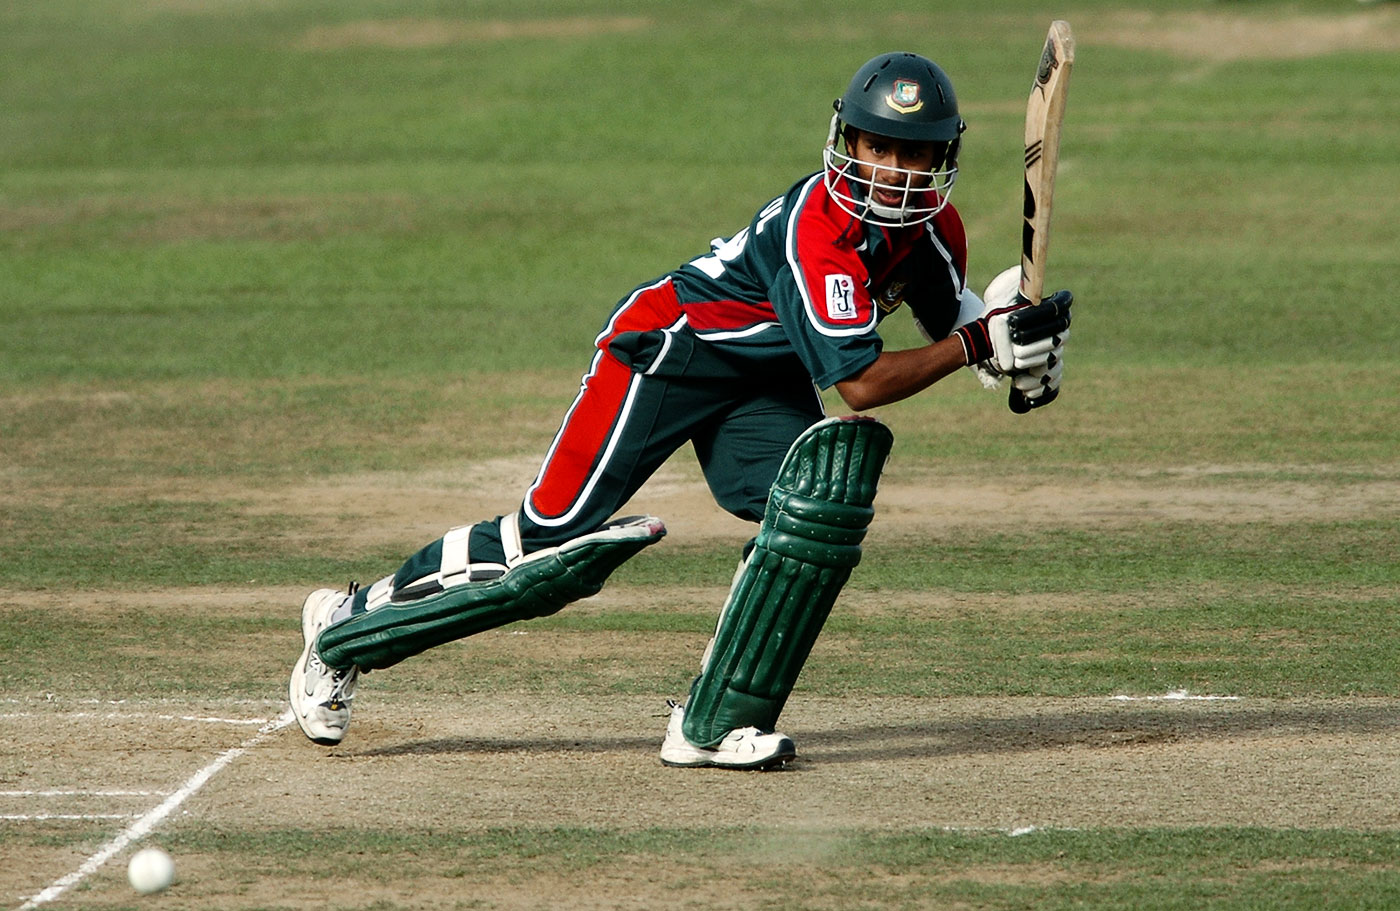 Mohammad Ashraful's fifty was the fastest by a Bangladesh batsman at the time